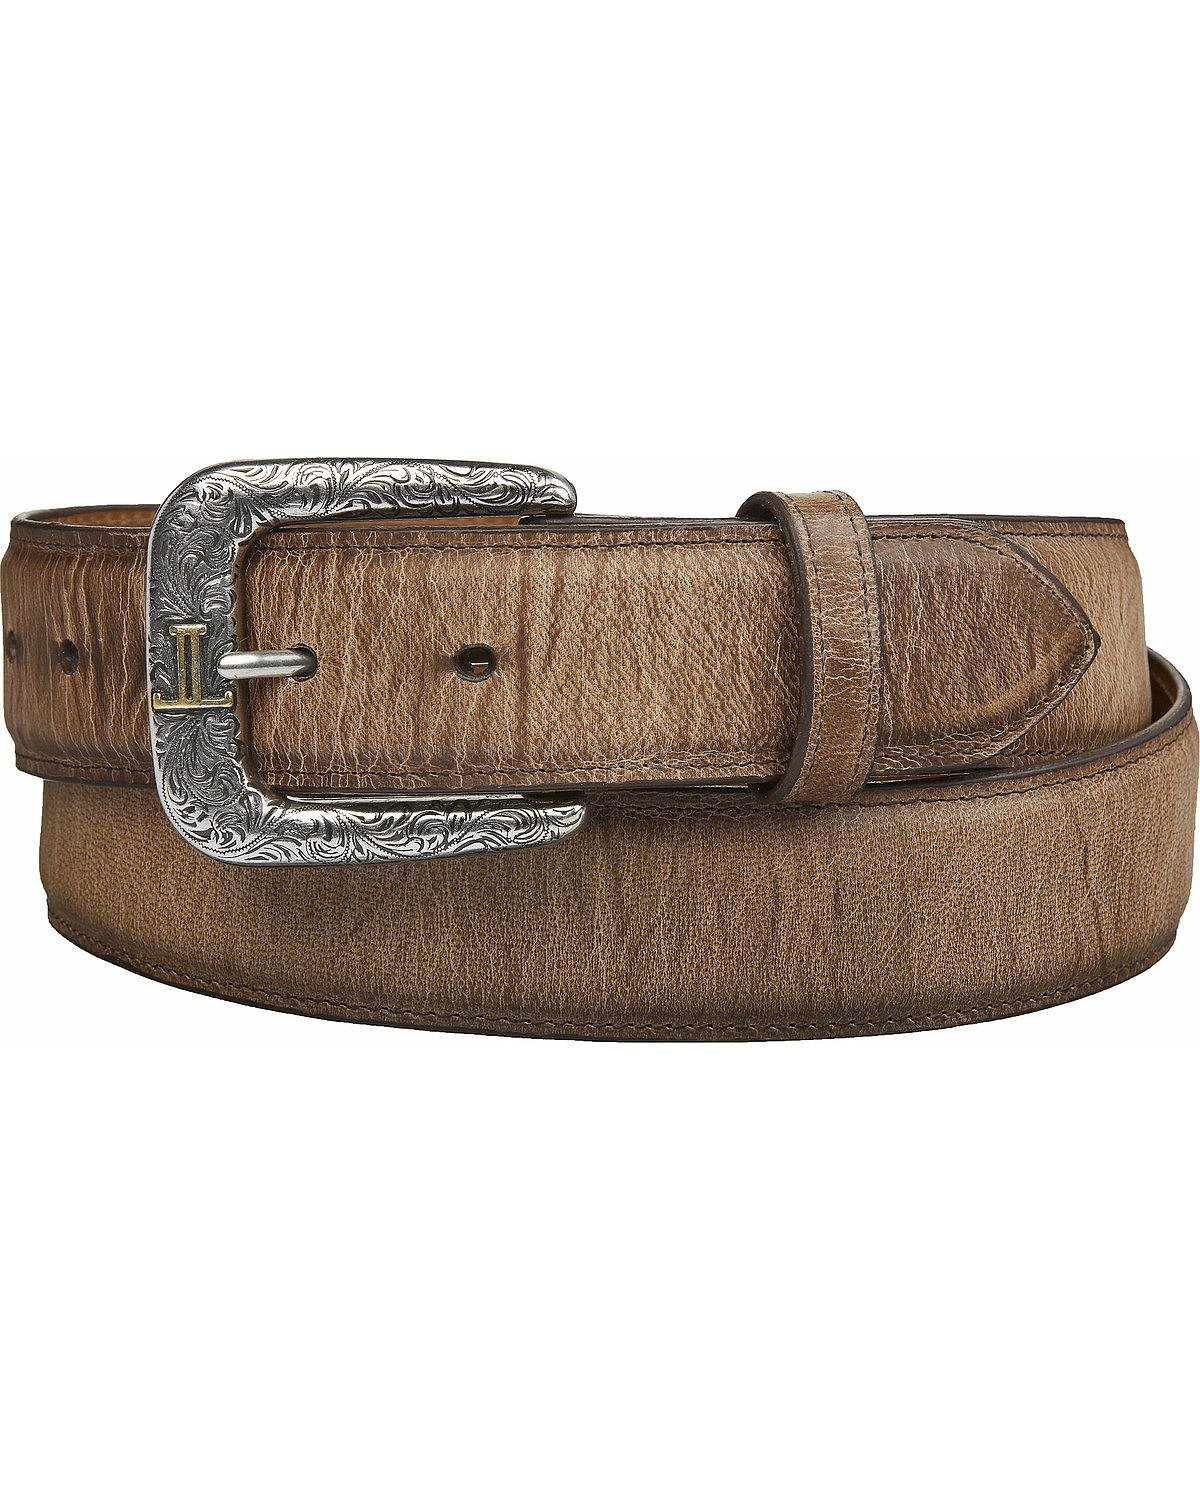 Lucchese Men's Mad Dog Goat Leather Belt Tan 38